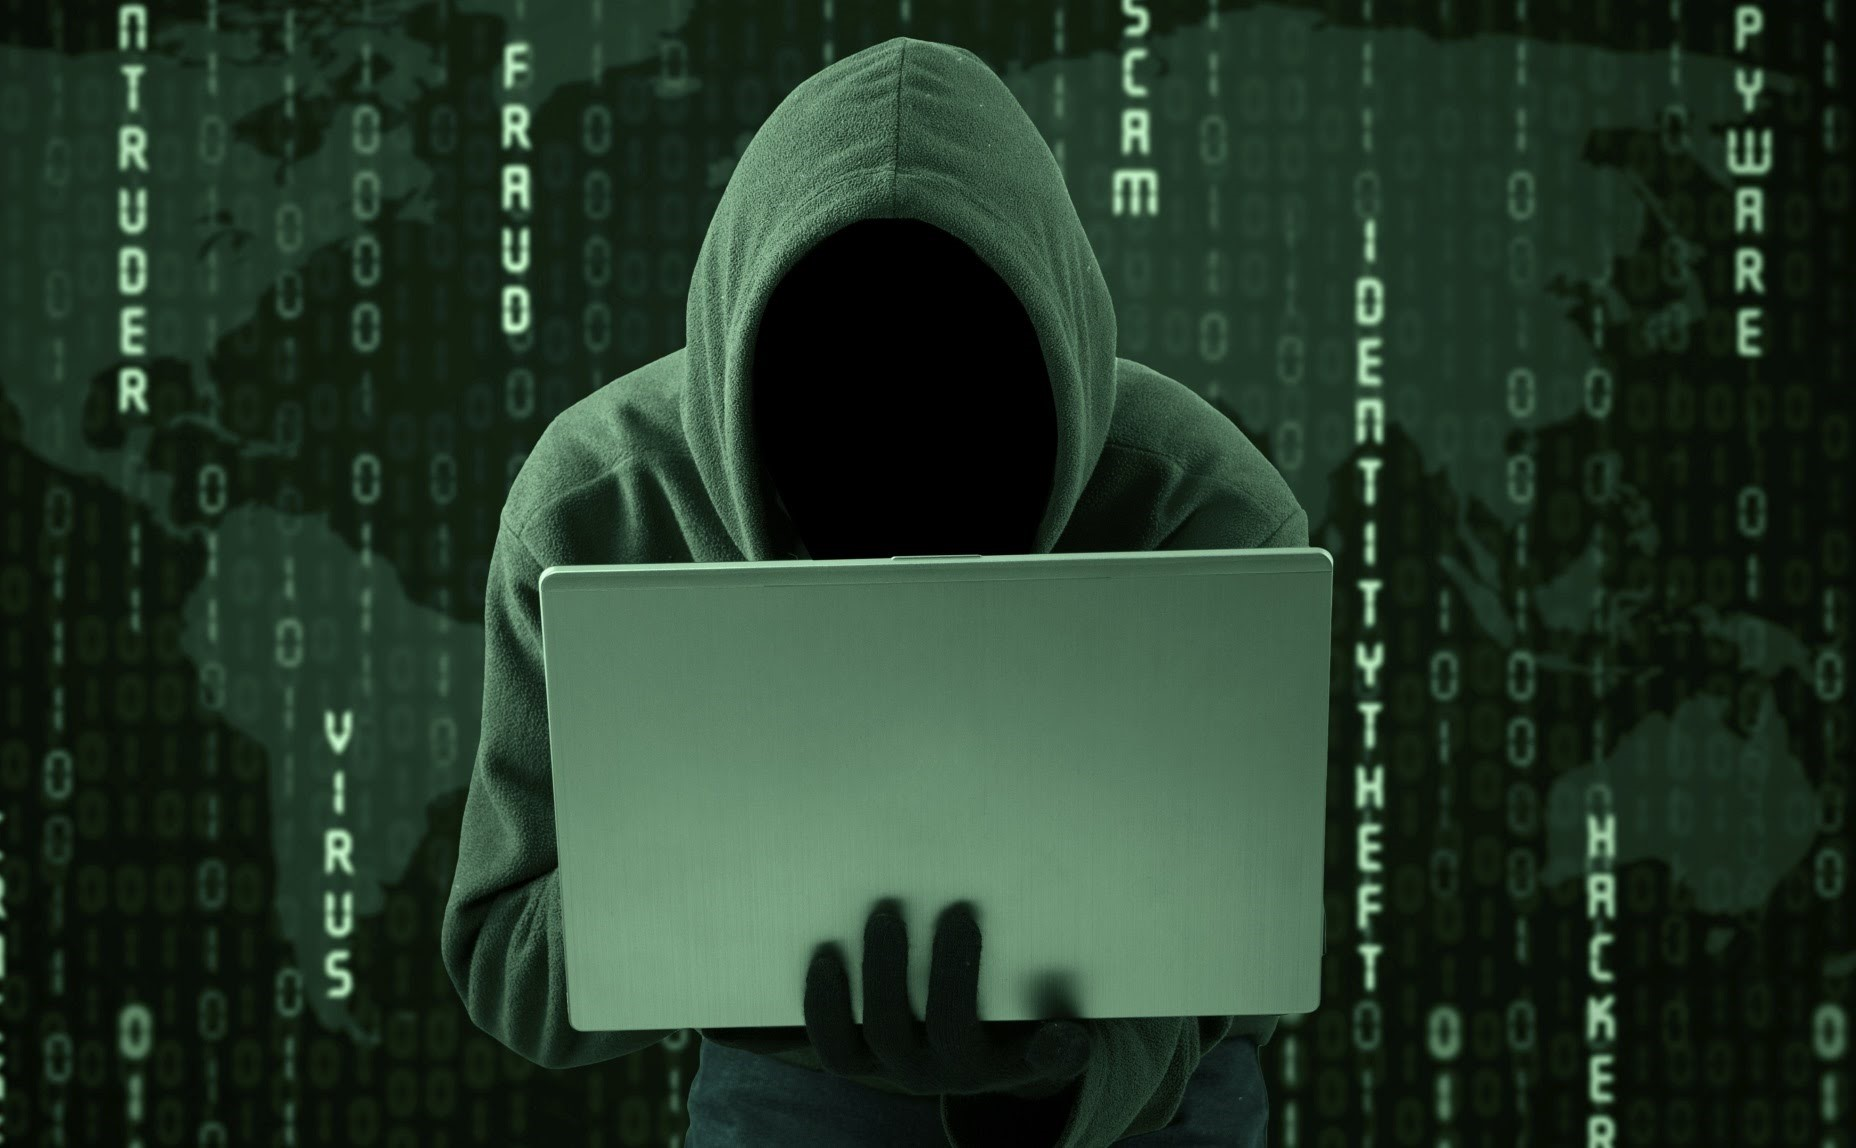 Cyber Security 101: Ways to Reduce a Hack